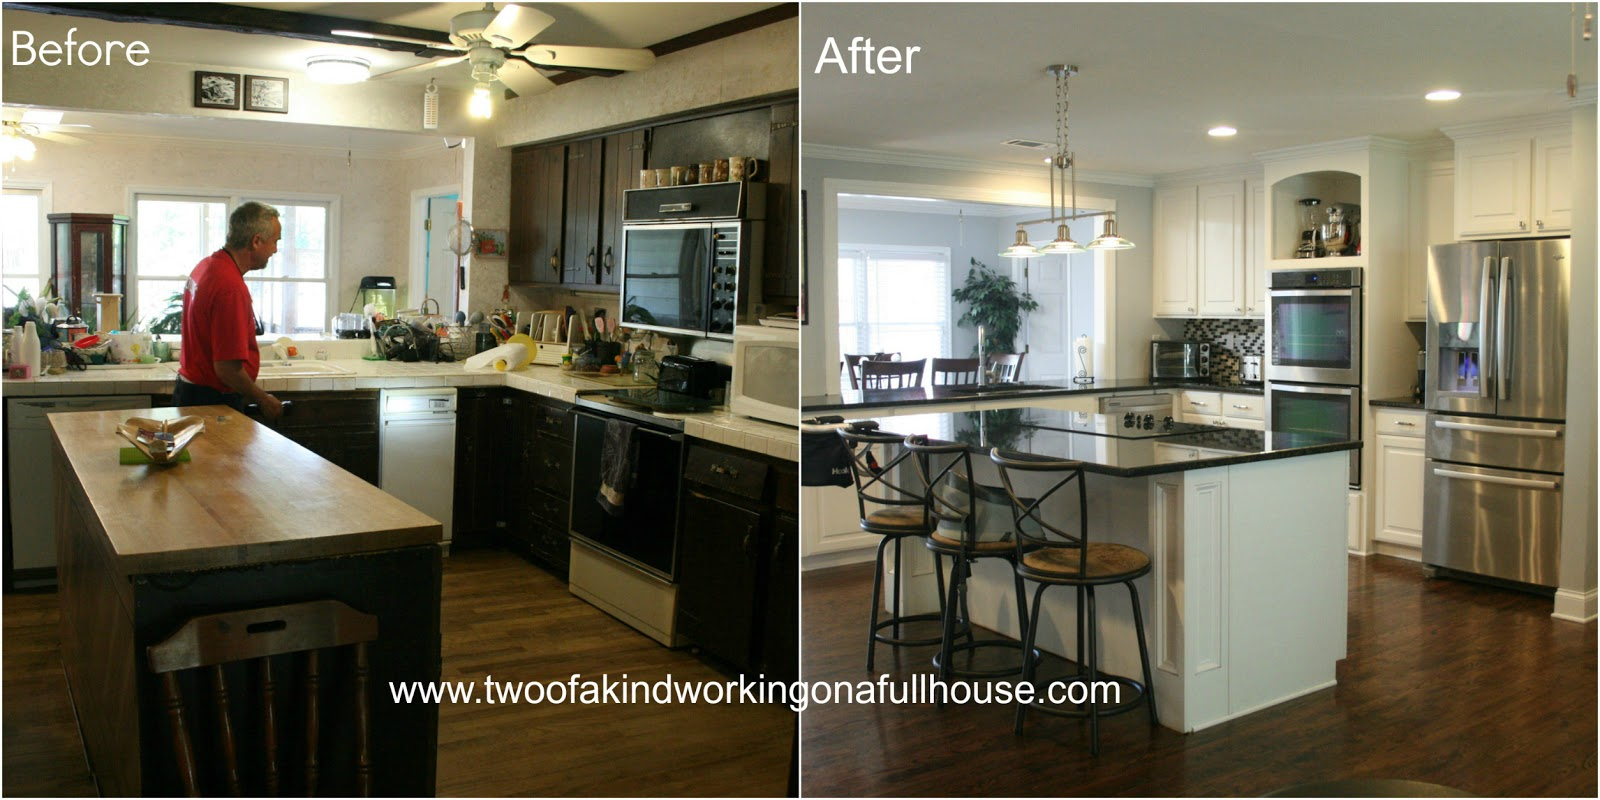 Wordless Wednesday   Before/After Kitchen Remodel Pictures